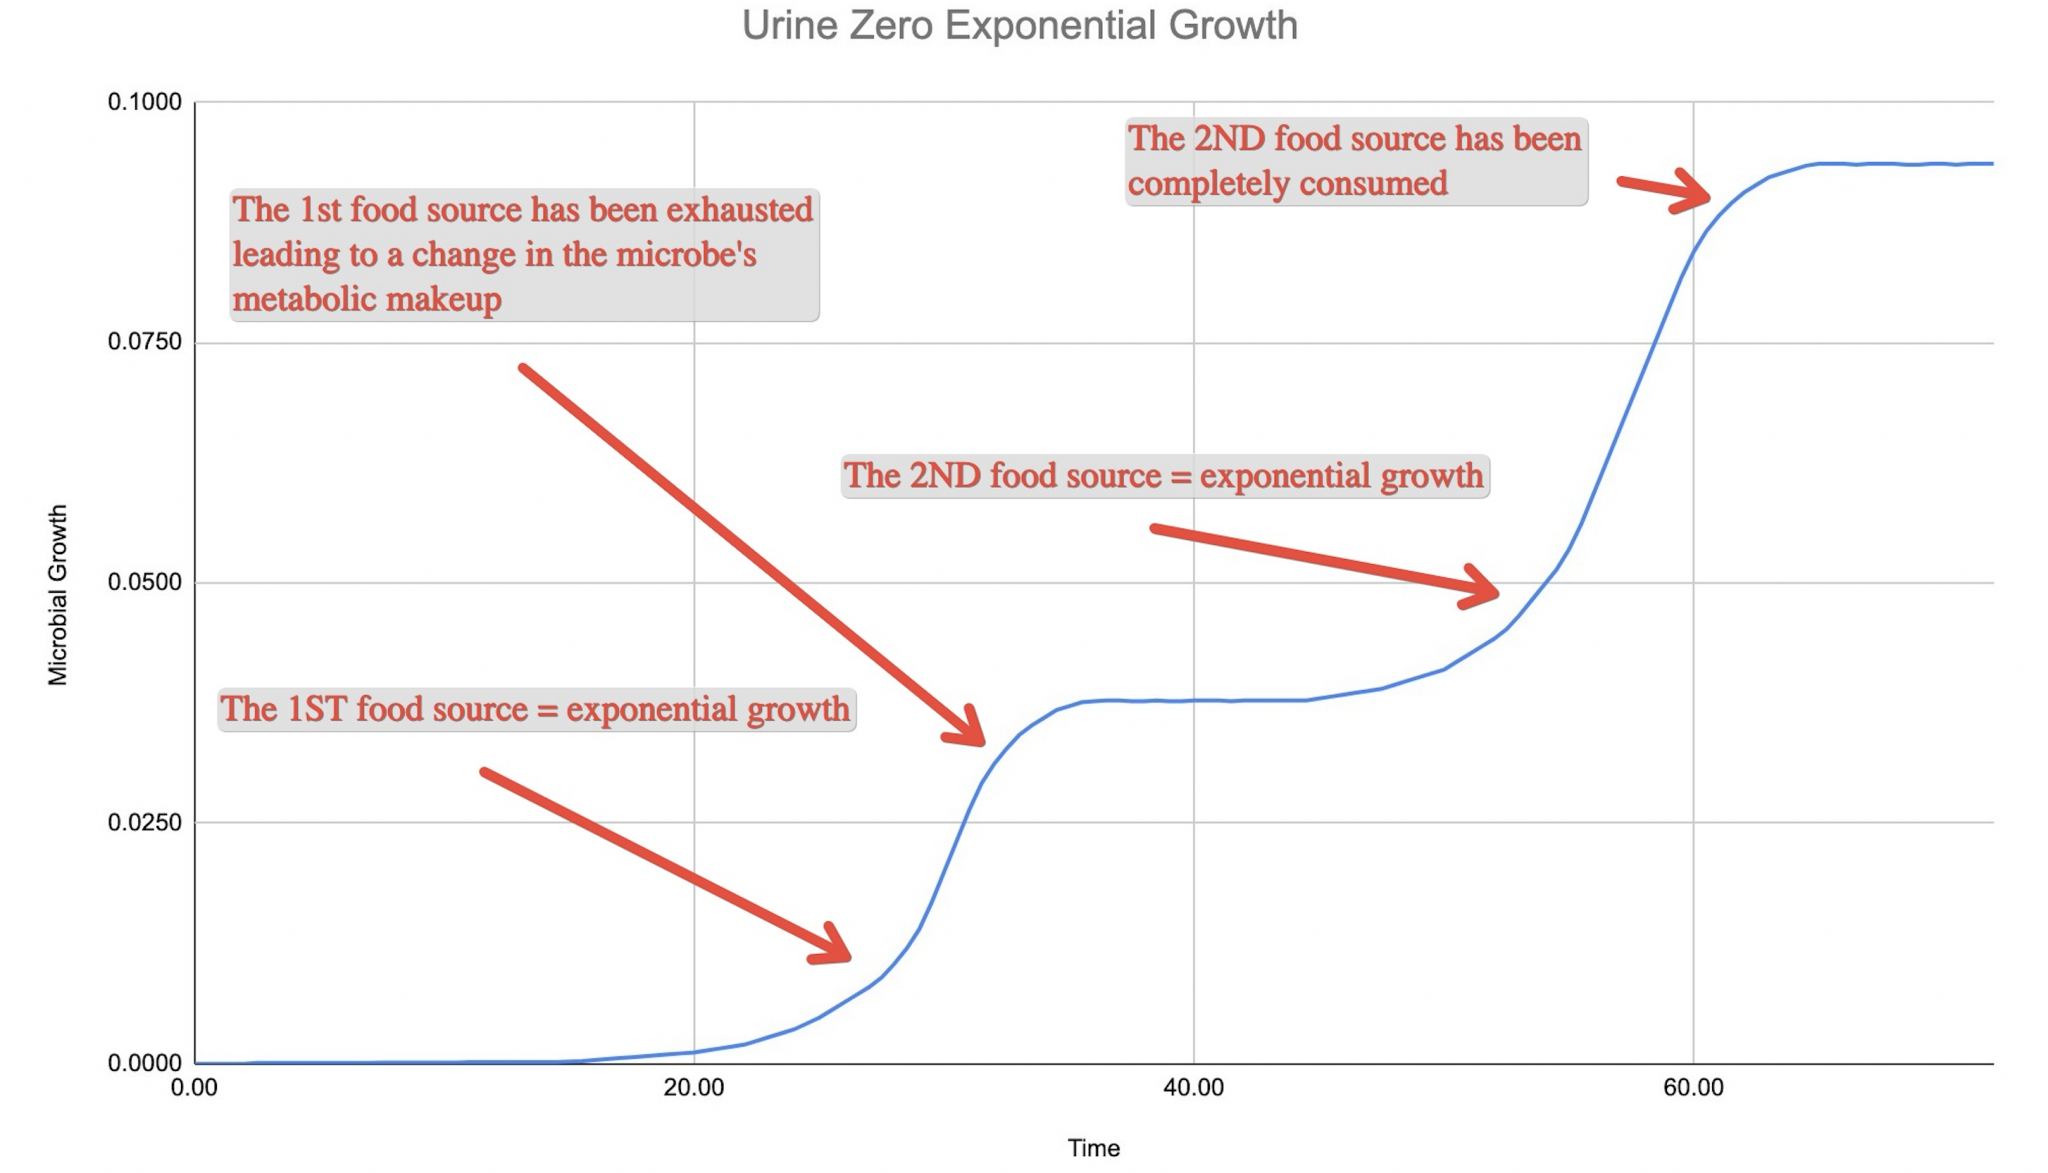 Urine Zero Exponential Growth